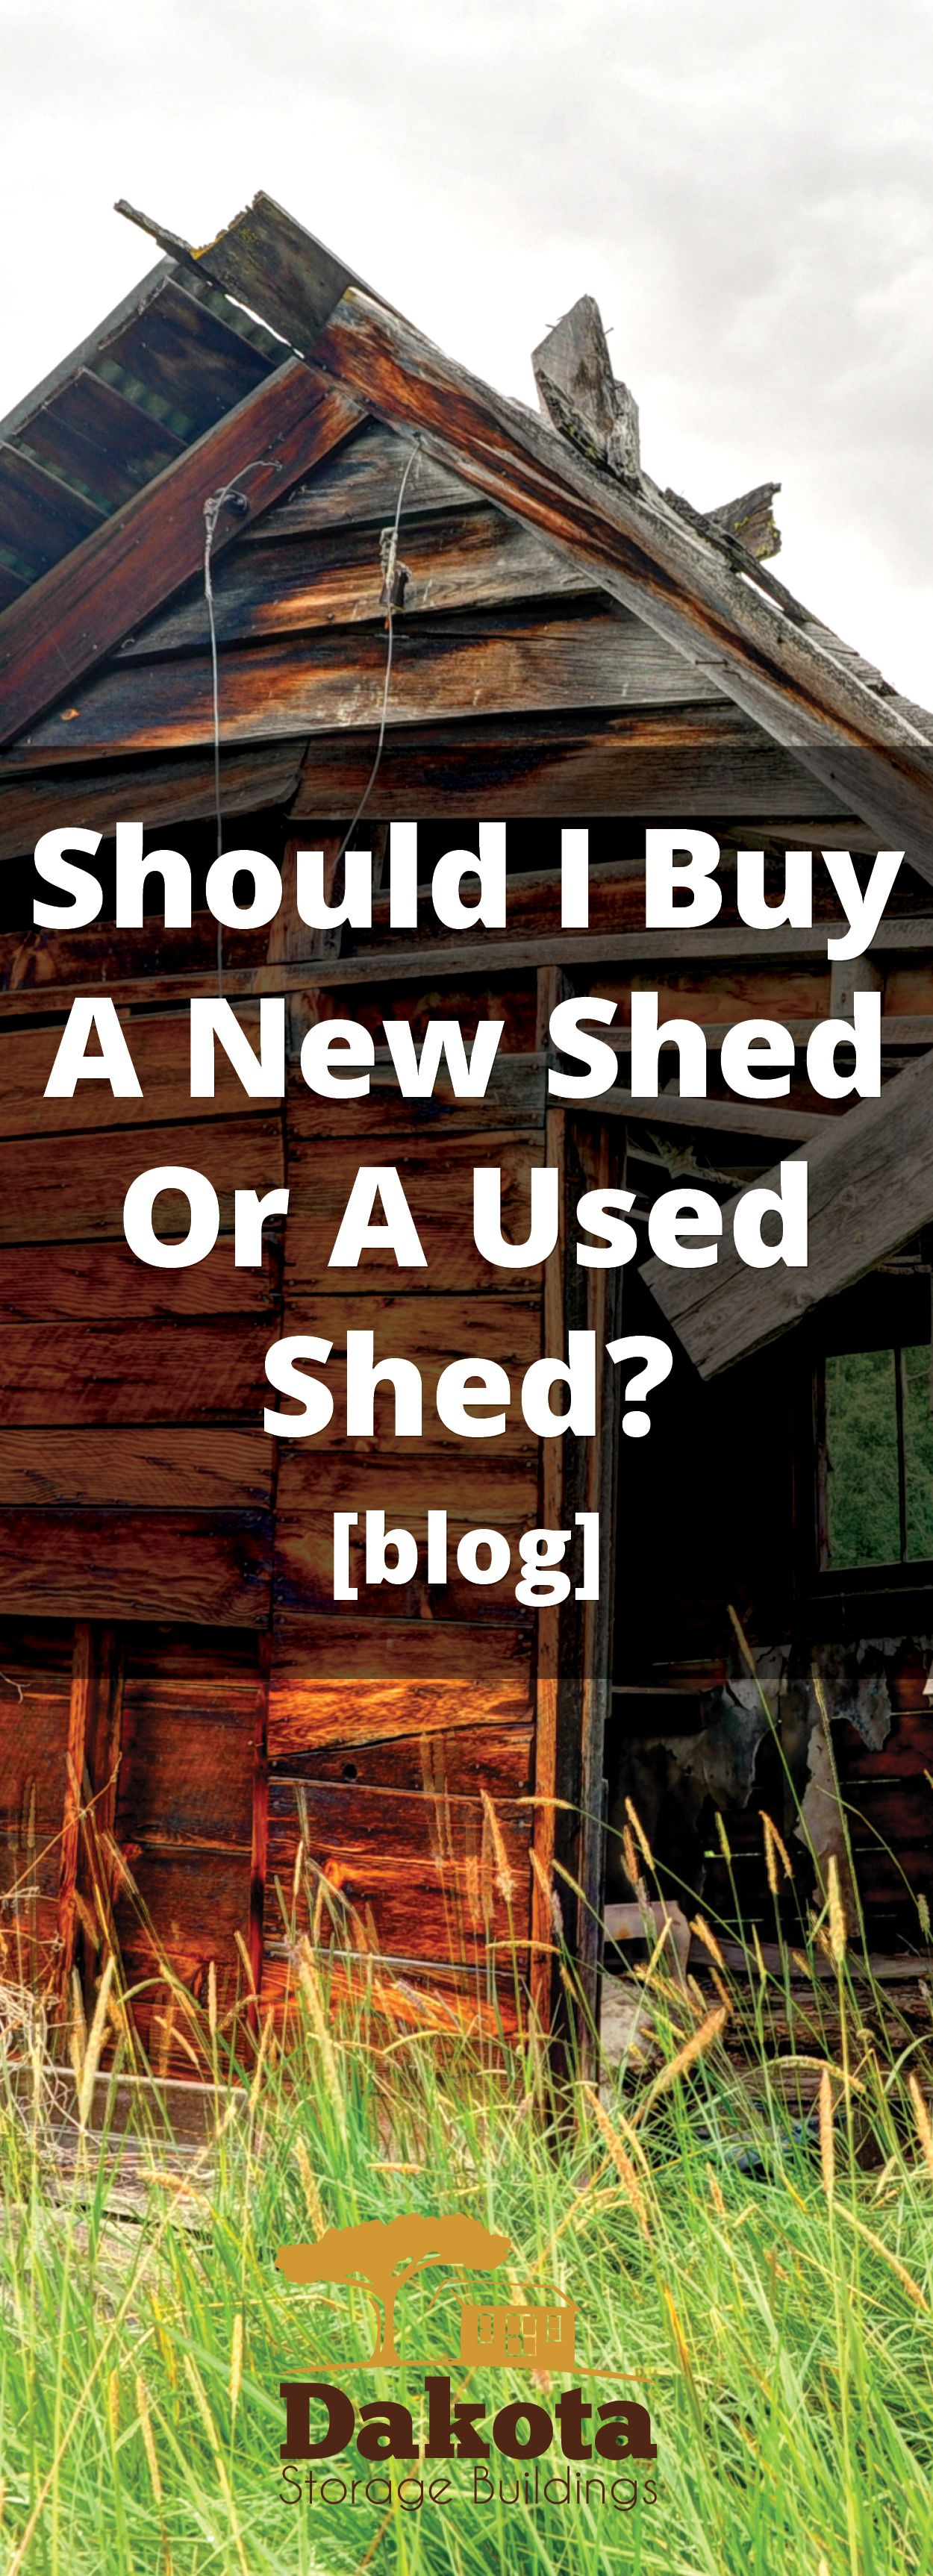 Buying a used shed may be cheaper than buying a new one